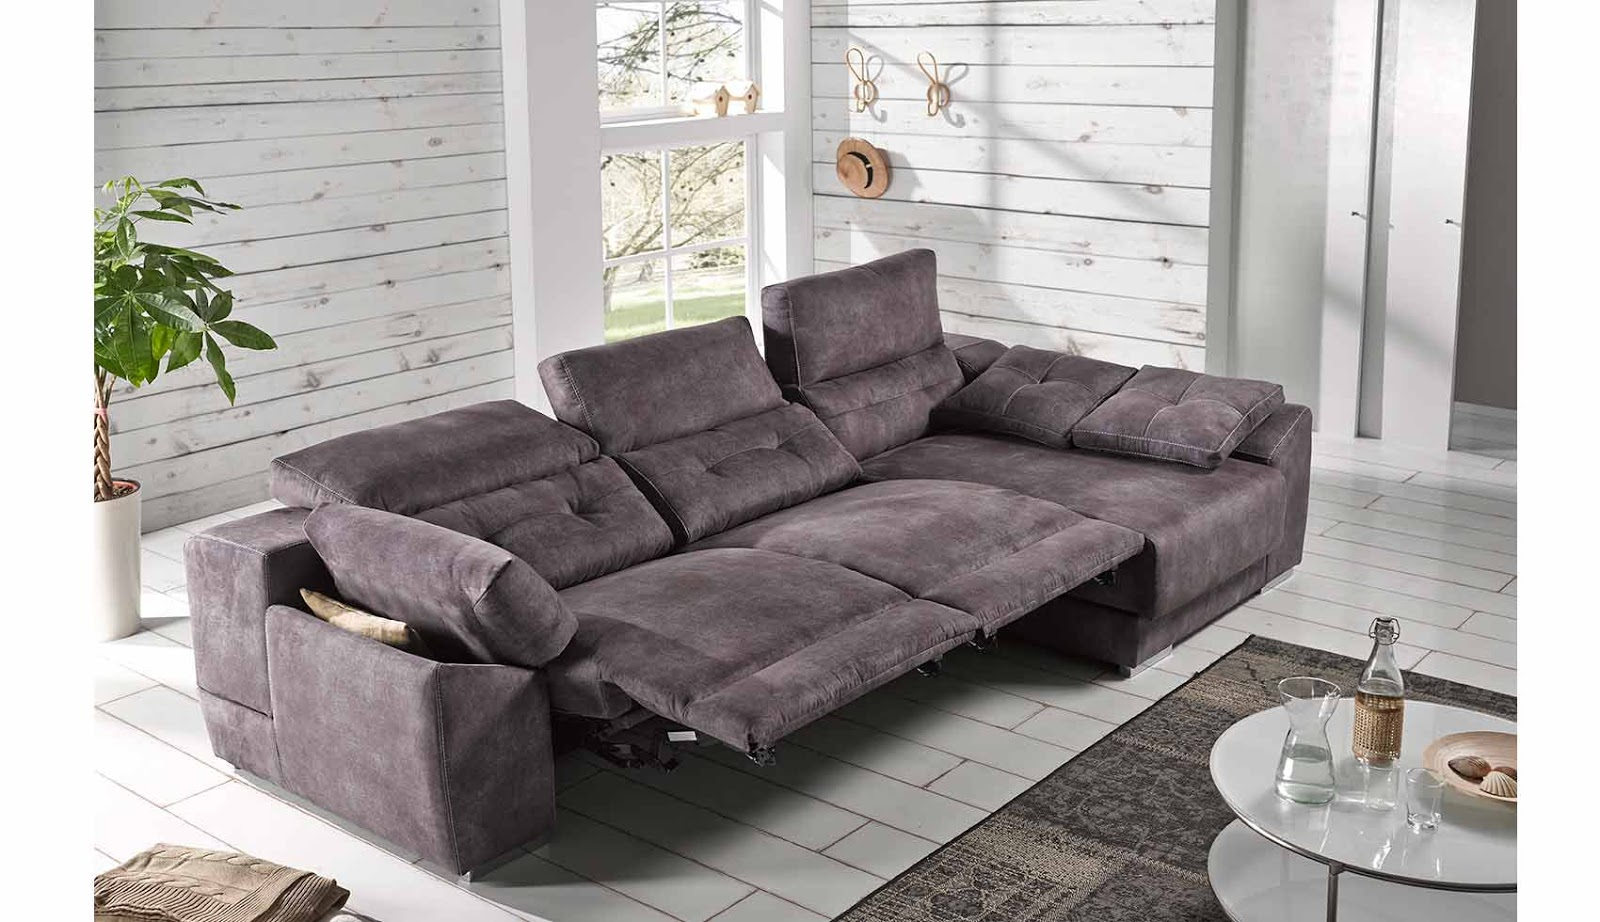 Kanapee Sofa Kanapee Sofa Amazing With Kanapee Sofa Great Kanapee